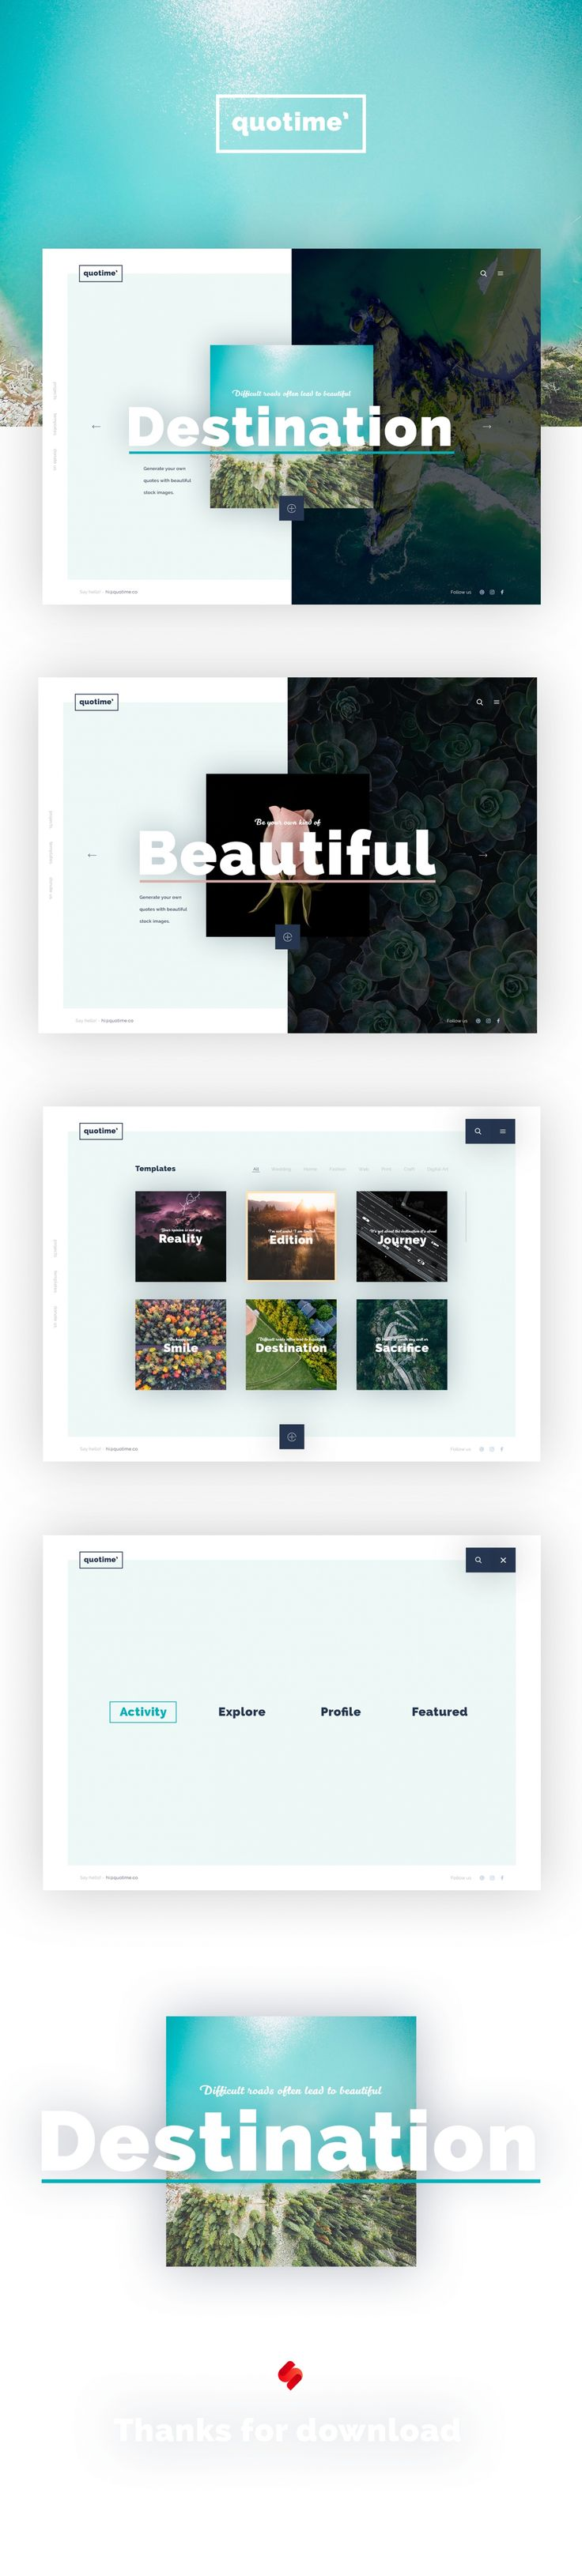 Free PSD for webdesigners. Download awsome templates, Icons and Mockups for free!